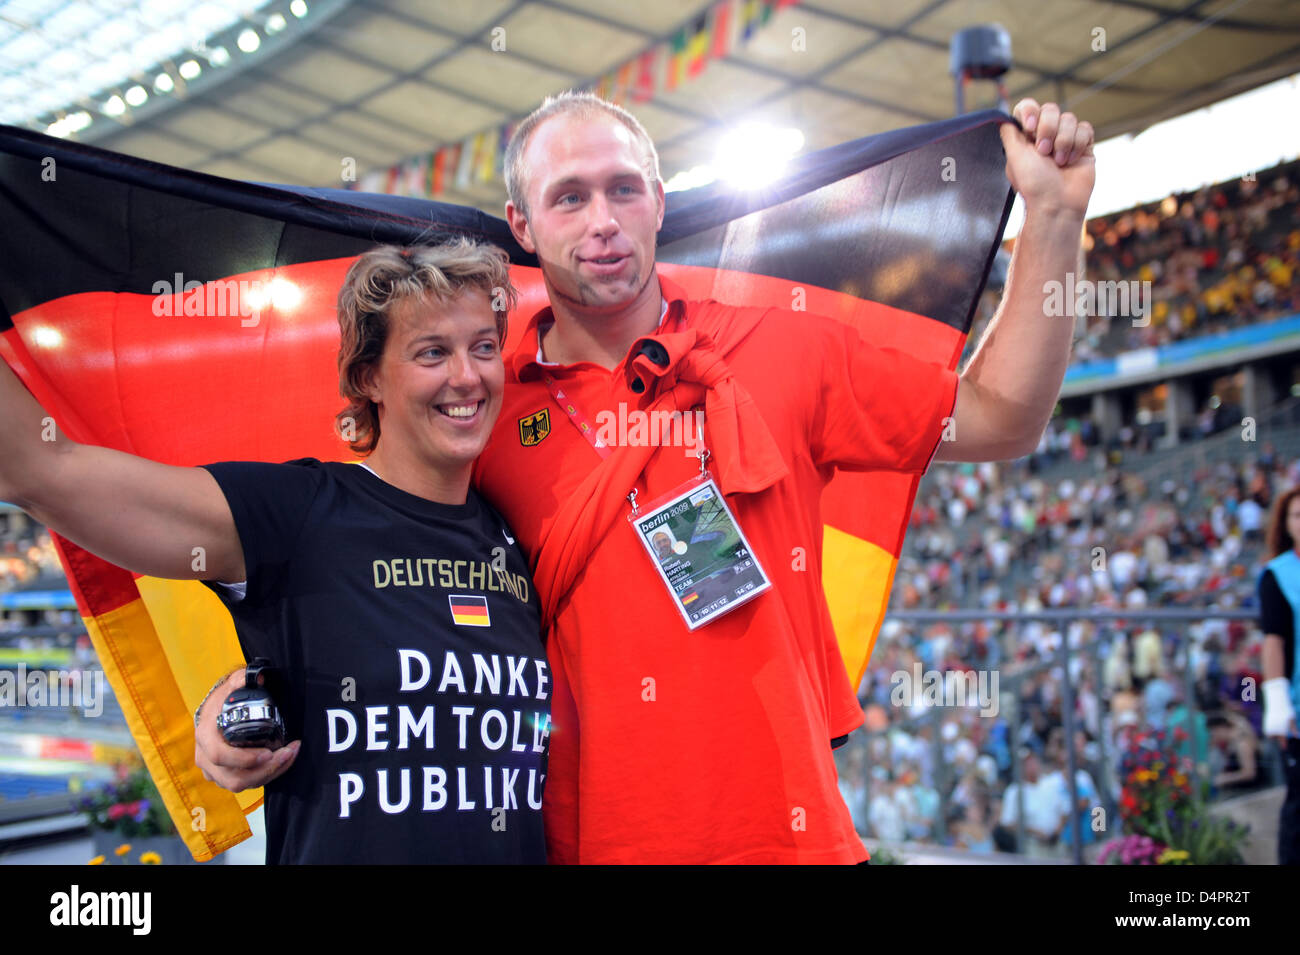 German gold medallists, discus thrower Robert Harting and javelin thrower Steffi Nerius, pose during the closing - Stock Image